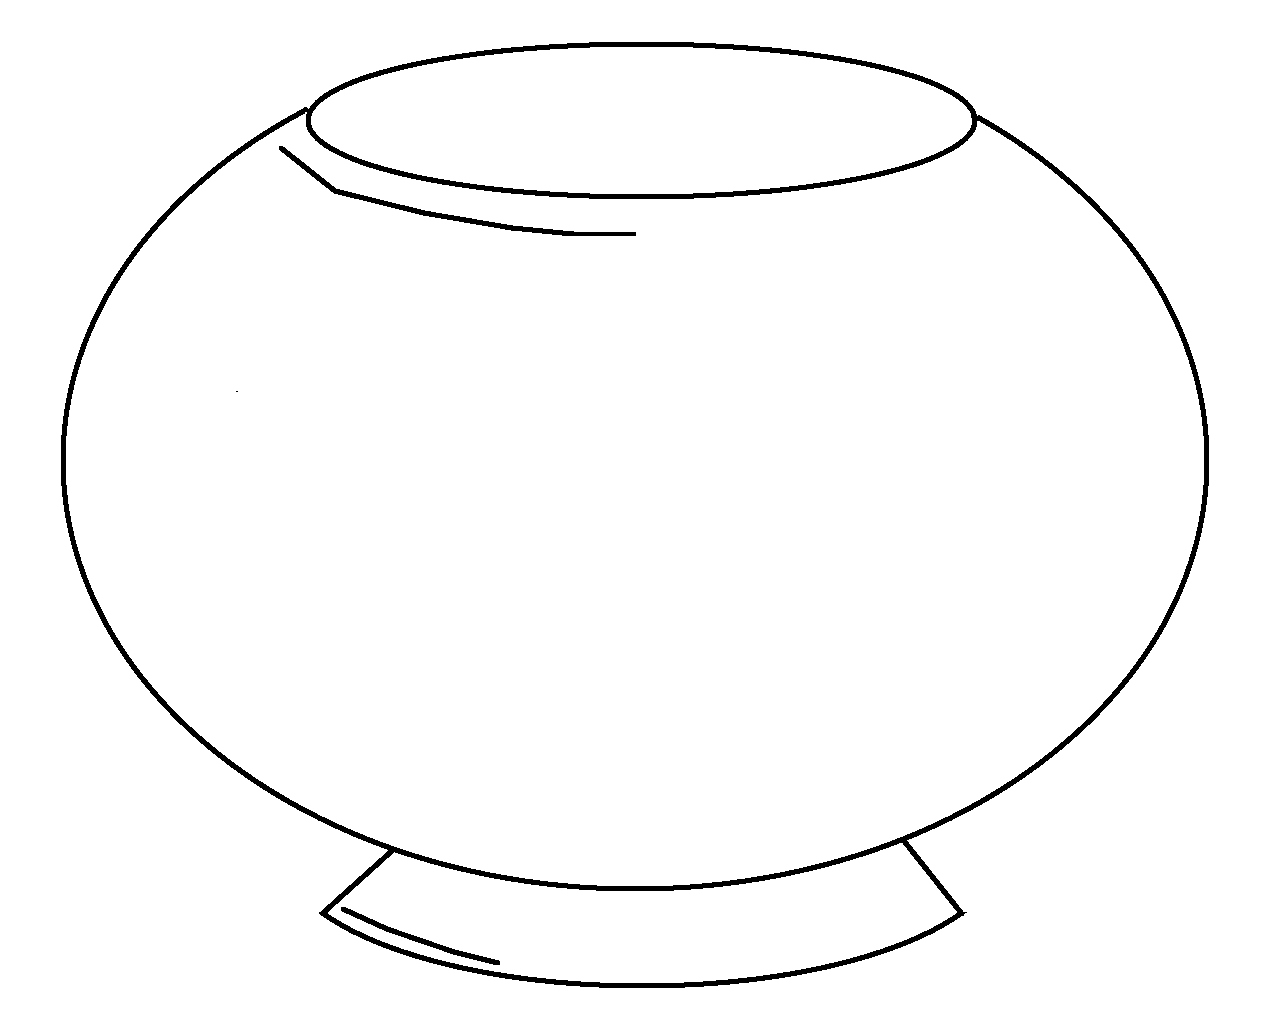 fishbowl coloring page, Powerpoint templates